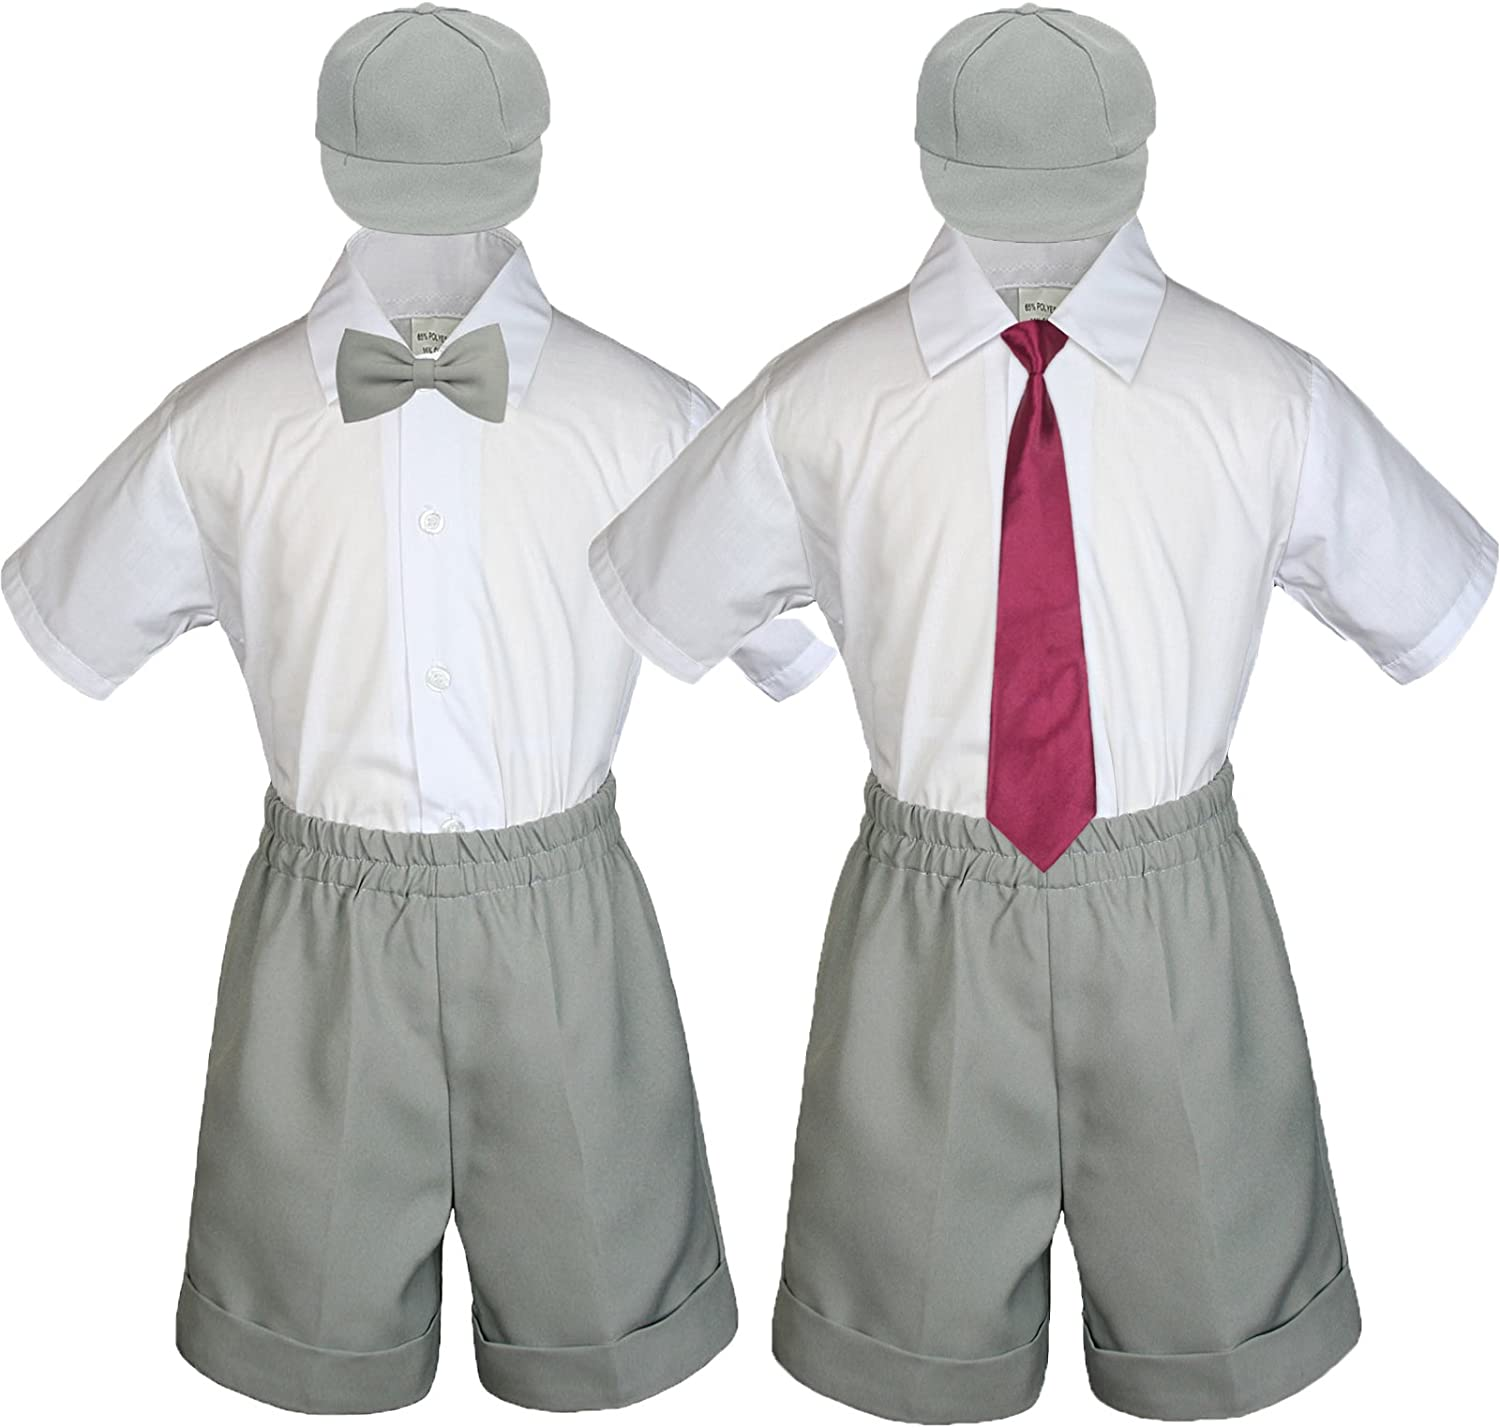 Baby Toddler Boy Kid Wedding Party Suit Gray Shorts Shirt Hat Necktie Set Sm-4T